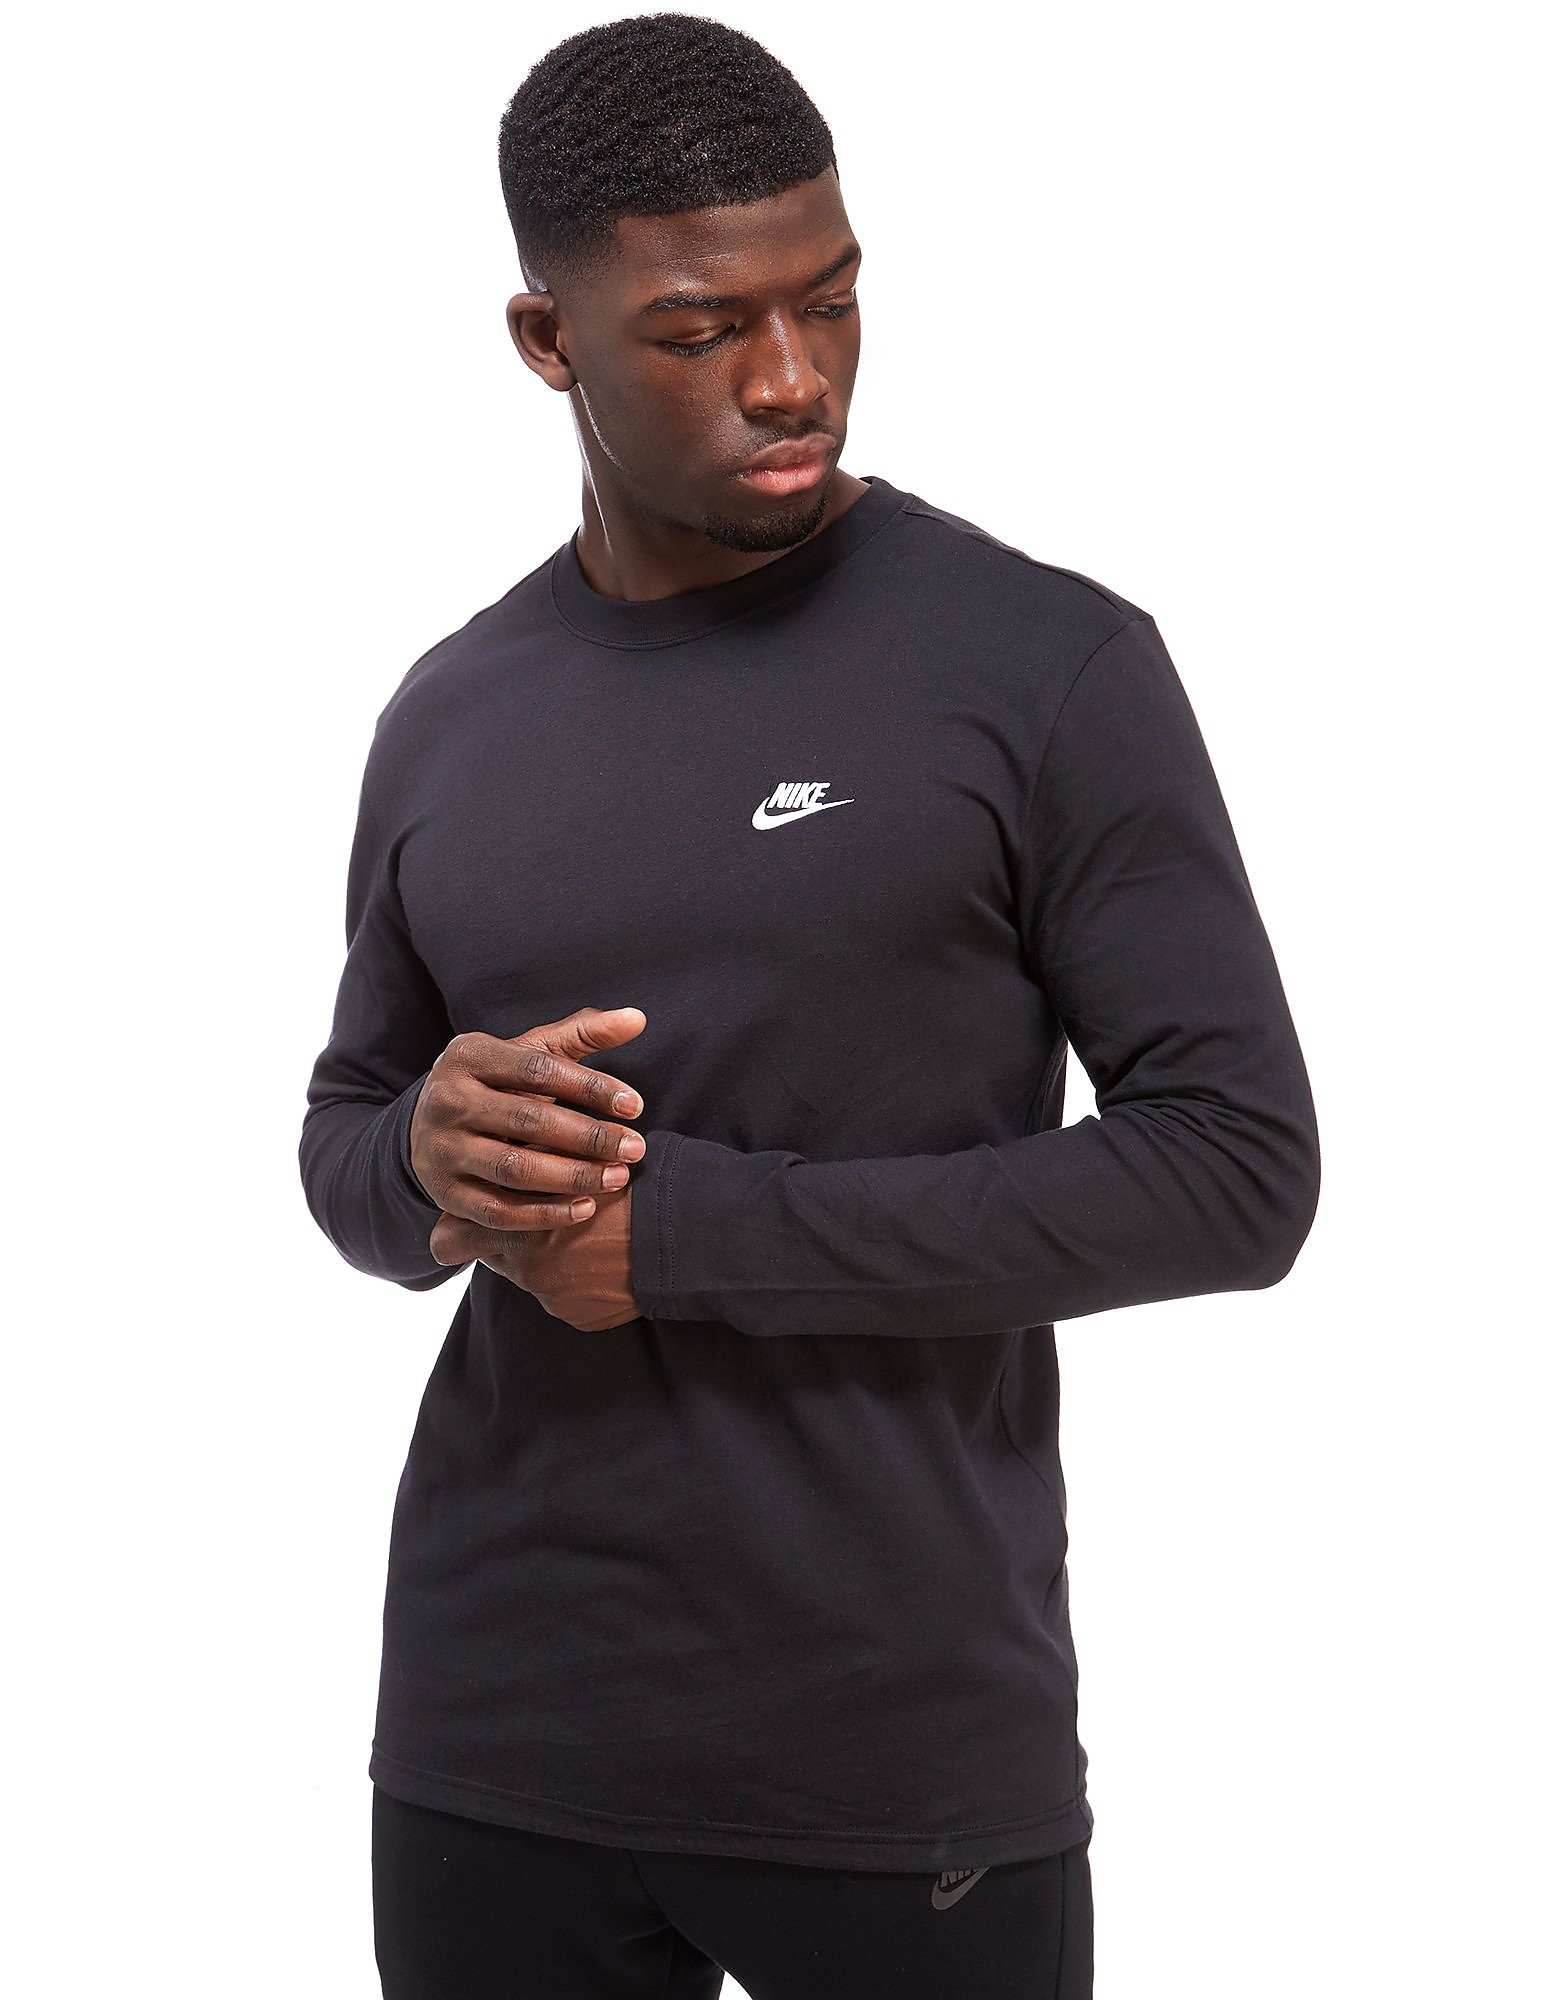 Nike Long-Sleeve Core T-Shirt